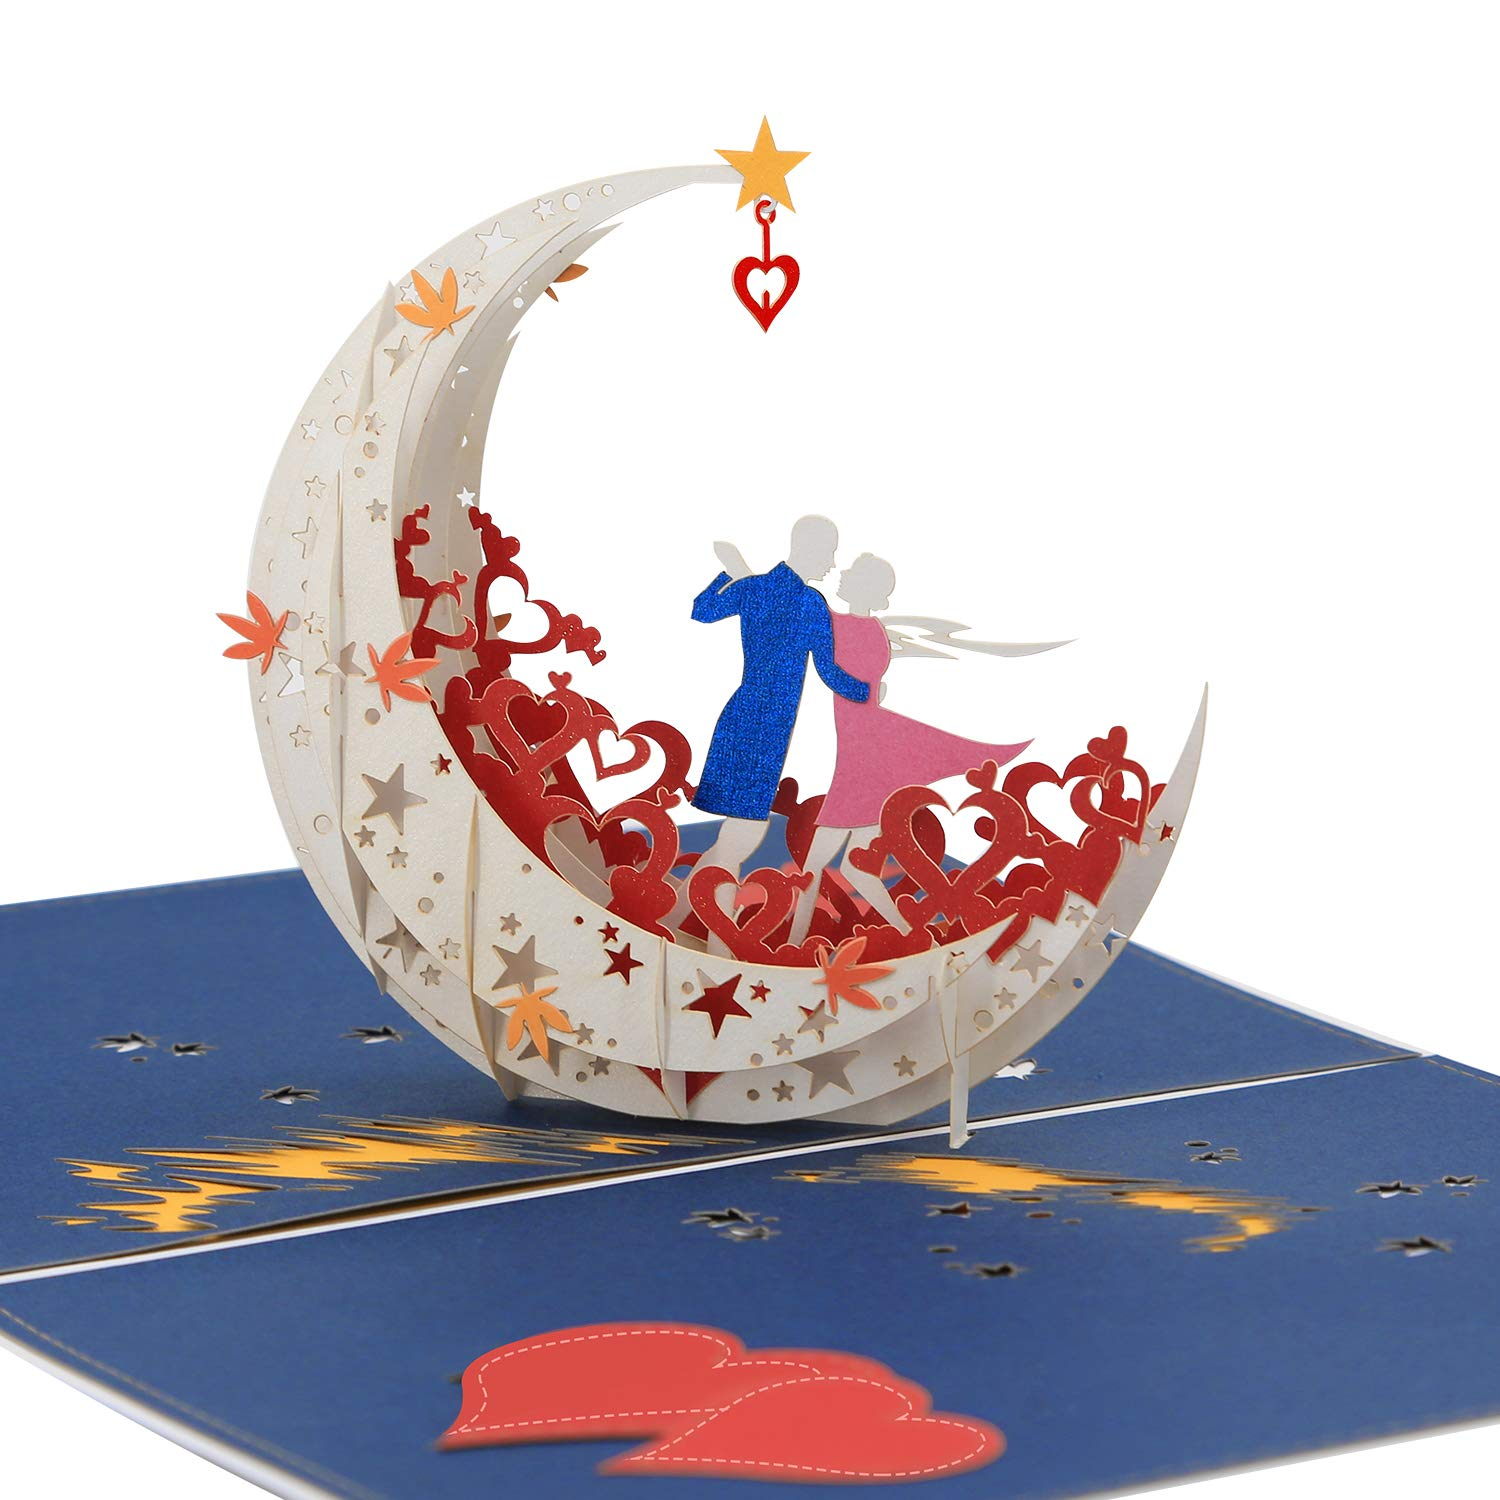 3D Pop Up Happy Anniversary Card- A Dance on Moon Boat To The Edge Of The World (large size) - Anniversary Gifts for Her, Happy Birthday Card for Wife, Miss You Card, Valentines Day Card by AITpop